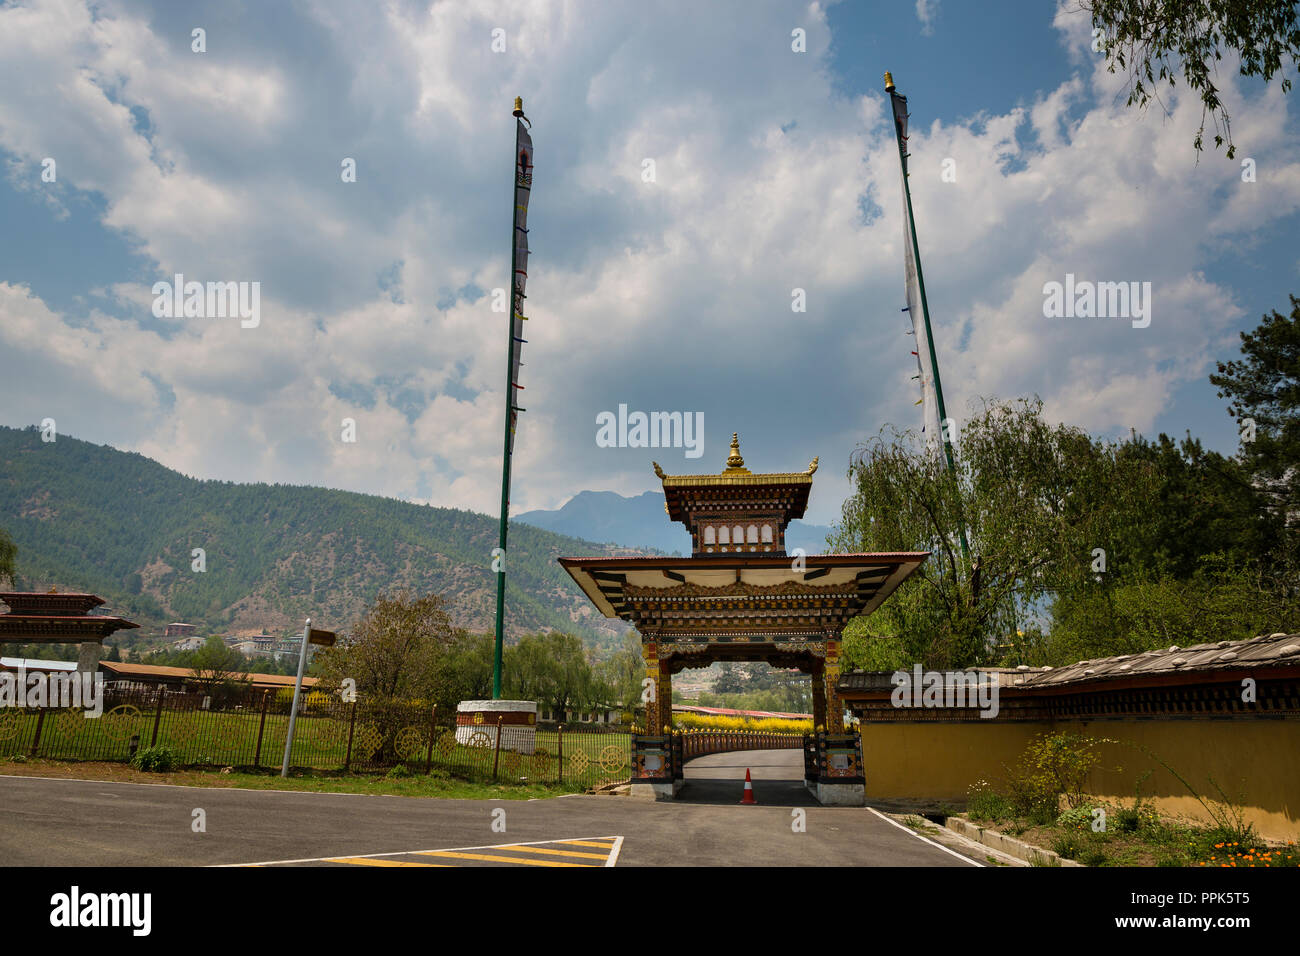 Entrance gate of the King's palace in Thimpu, the capital city of the Himalayan Kingdom of Bhutan - Stock Image